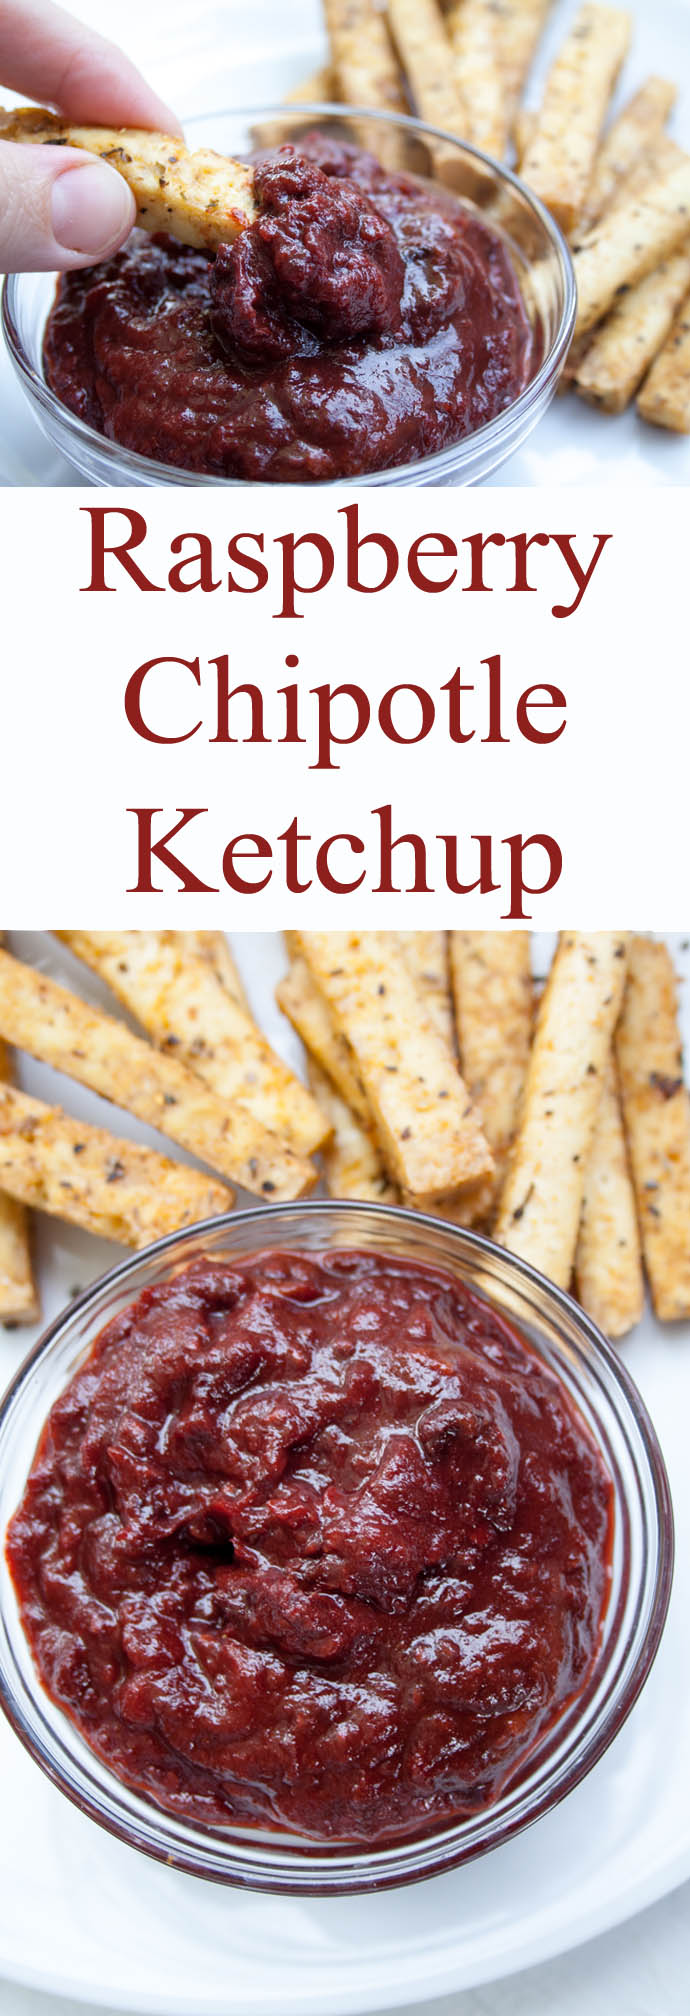 Raspberry Chipotle Ketchup collage photo with text.